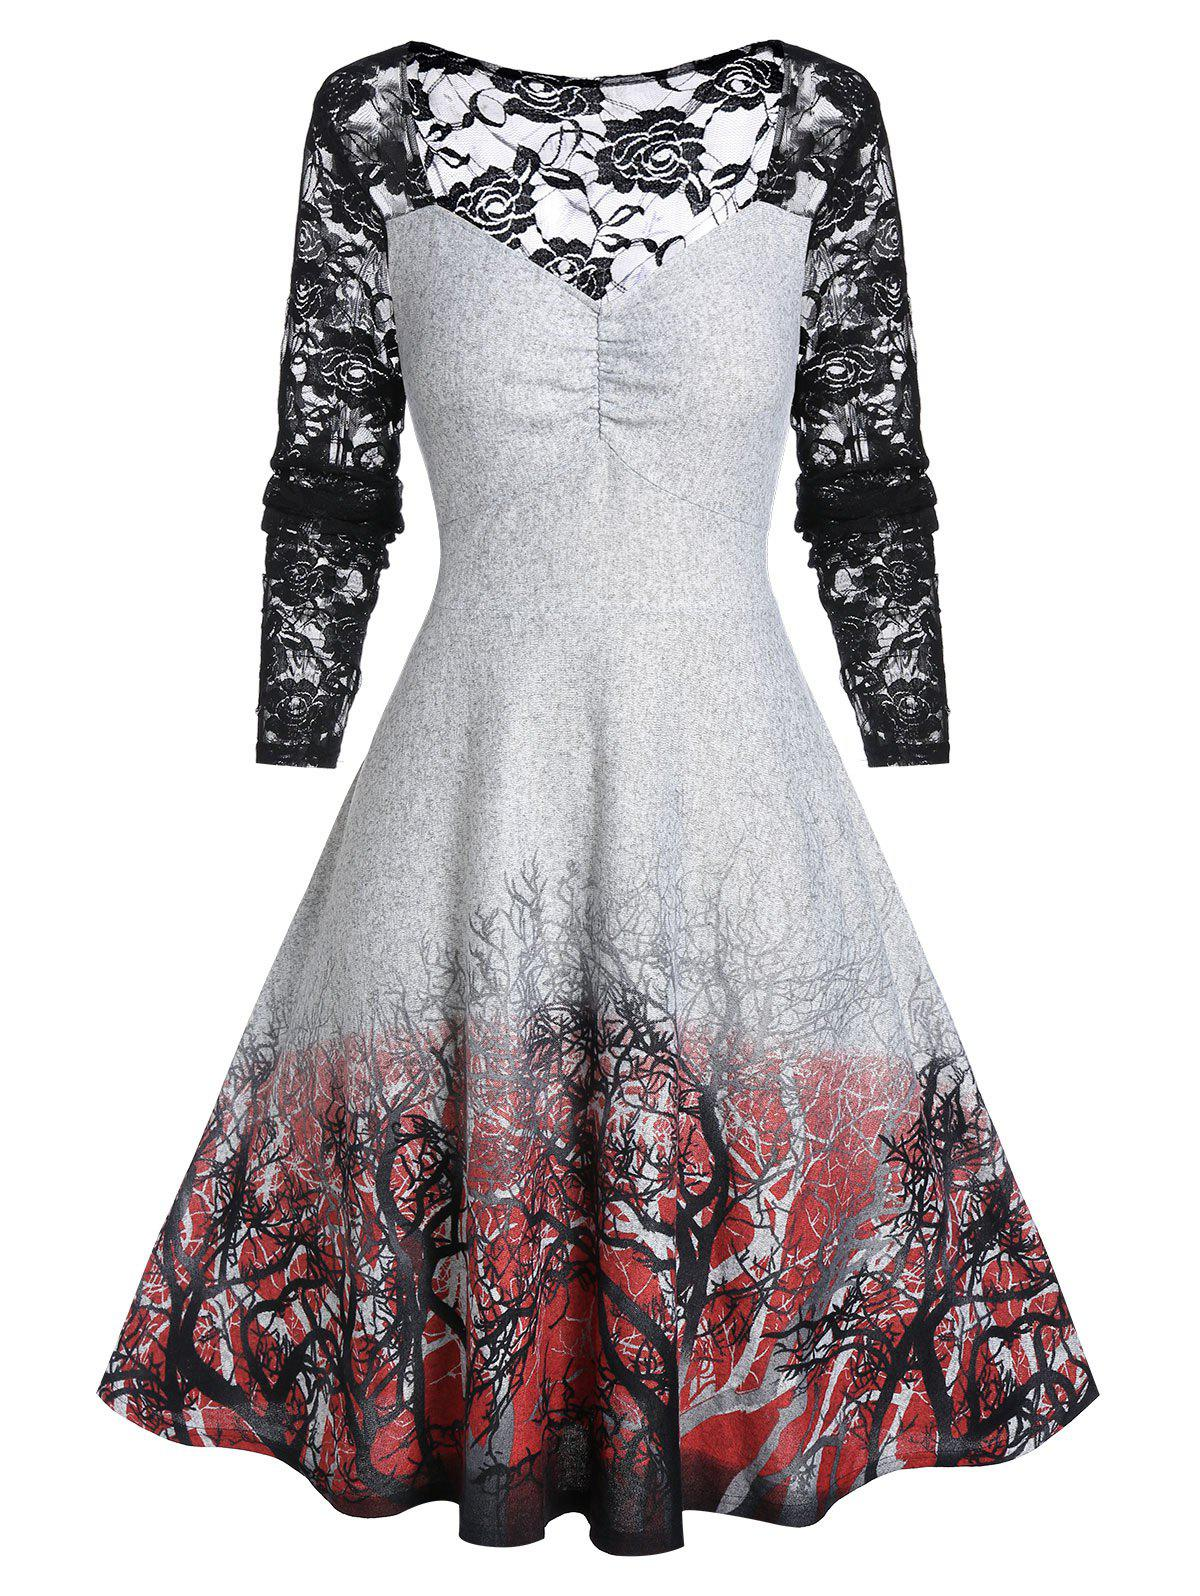 Plus Size Lace Insert Tree Print Long Sleeve Vintage Dress - GRAY CLOUD 4X